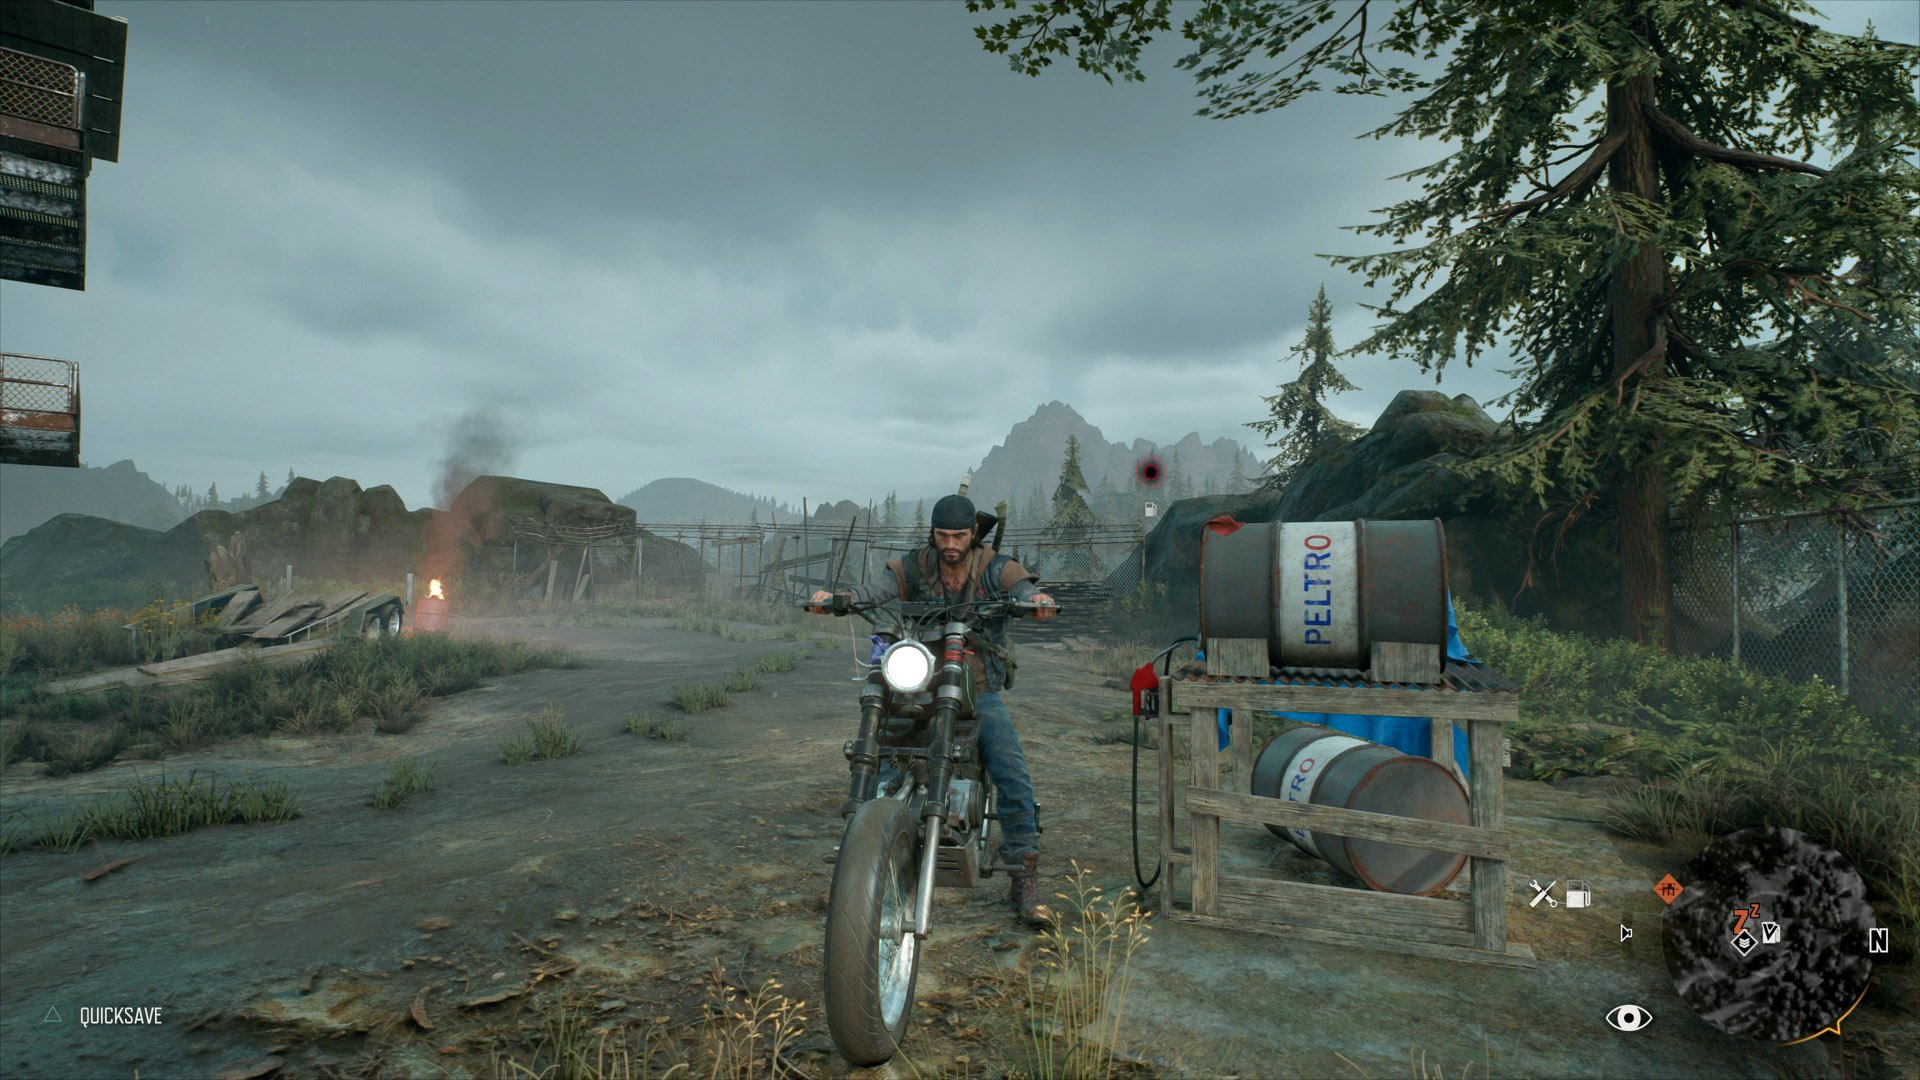 How to Upgrade Deacon's Bike in Days Gone